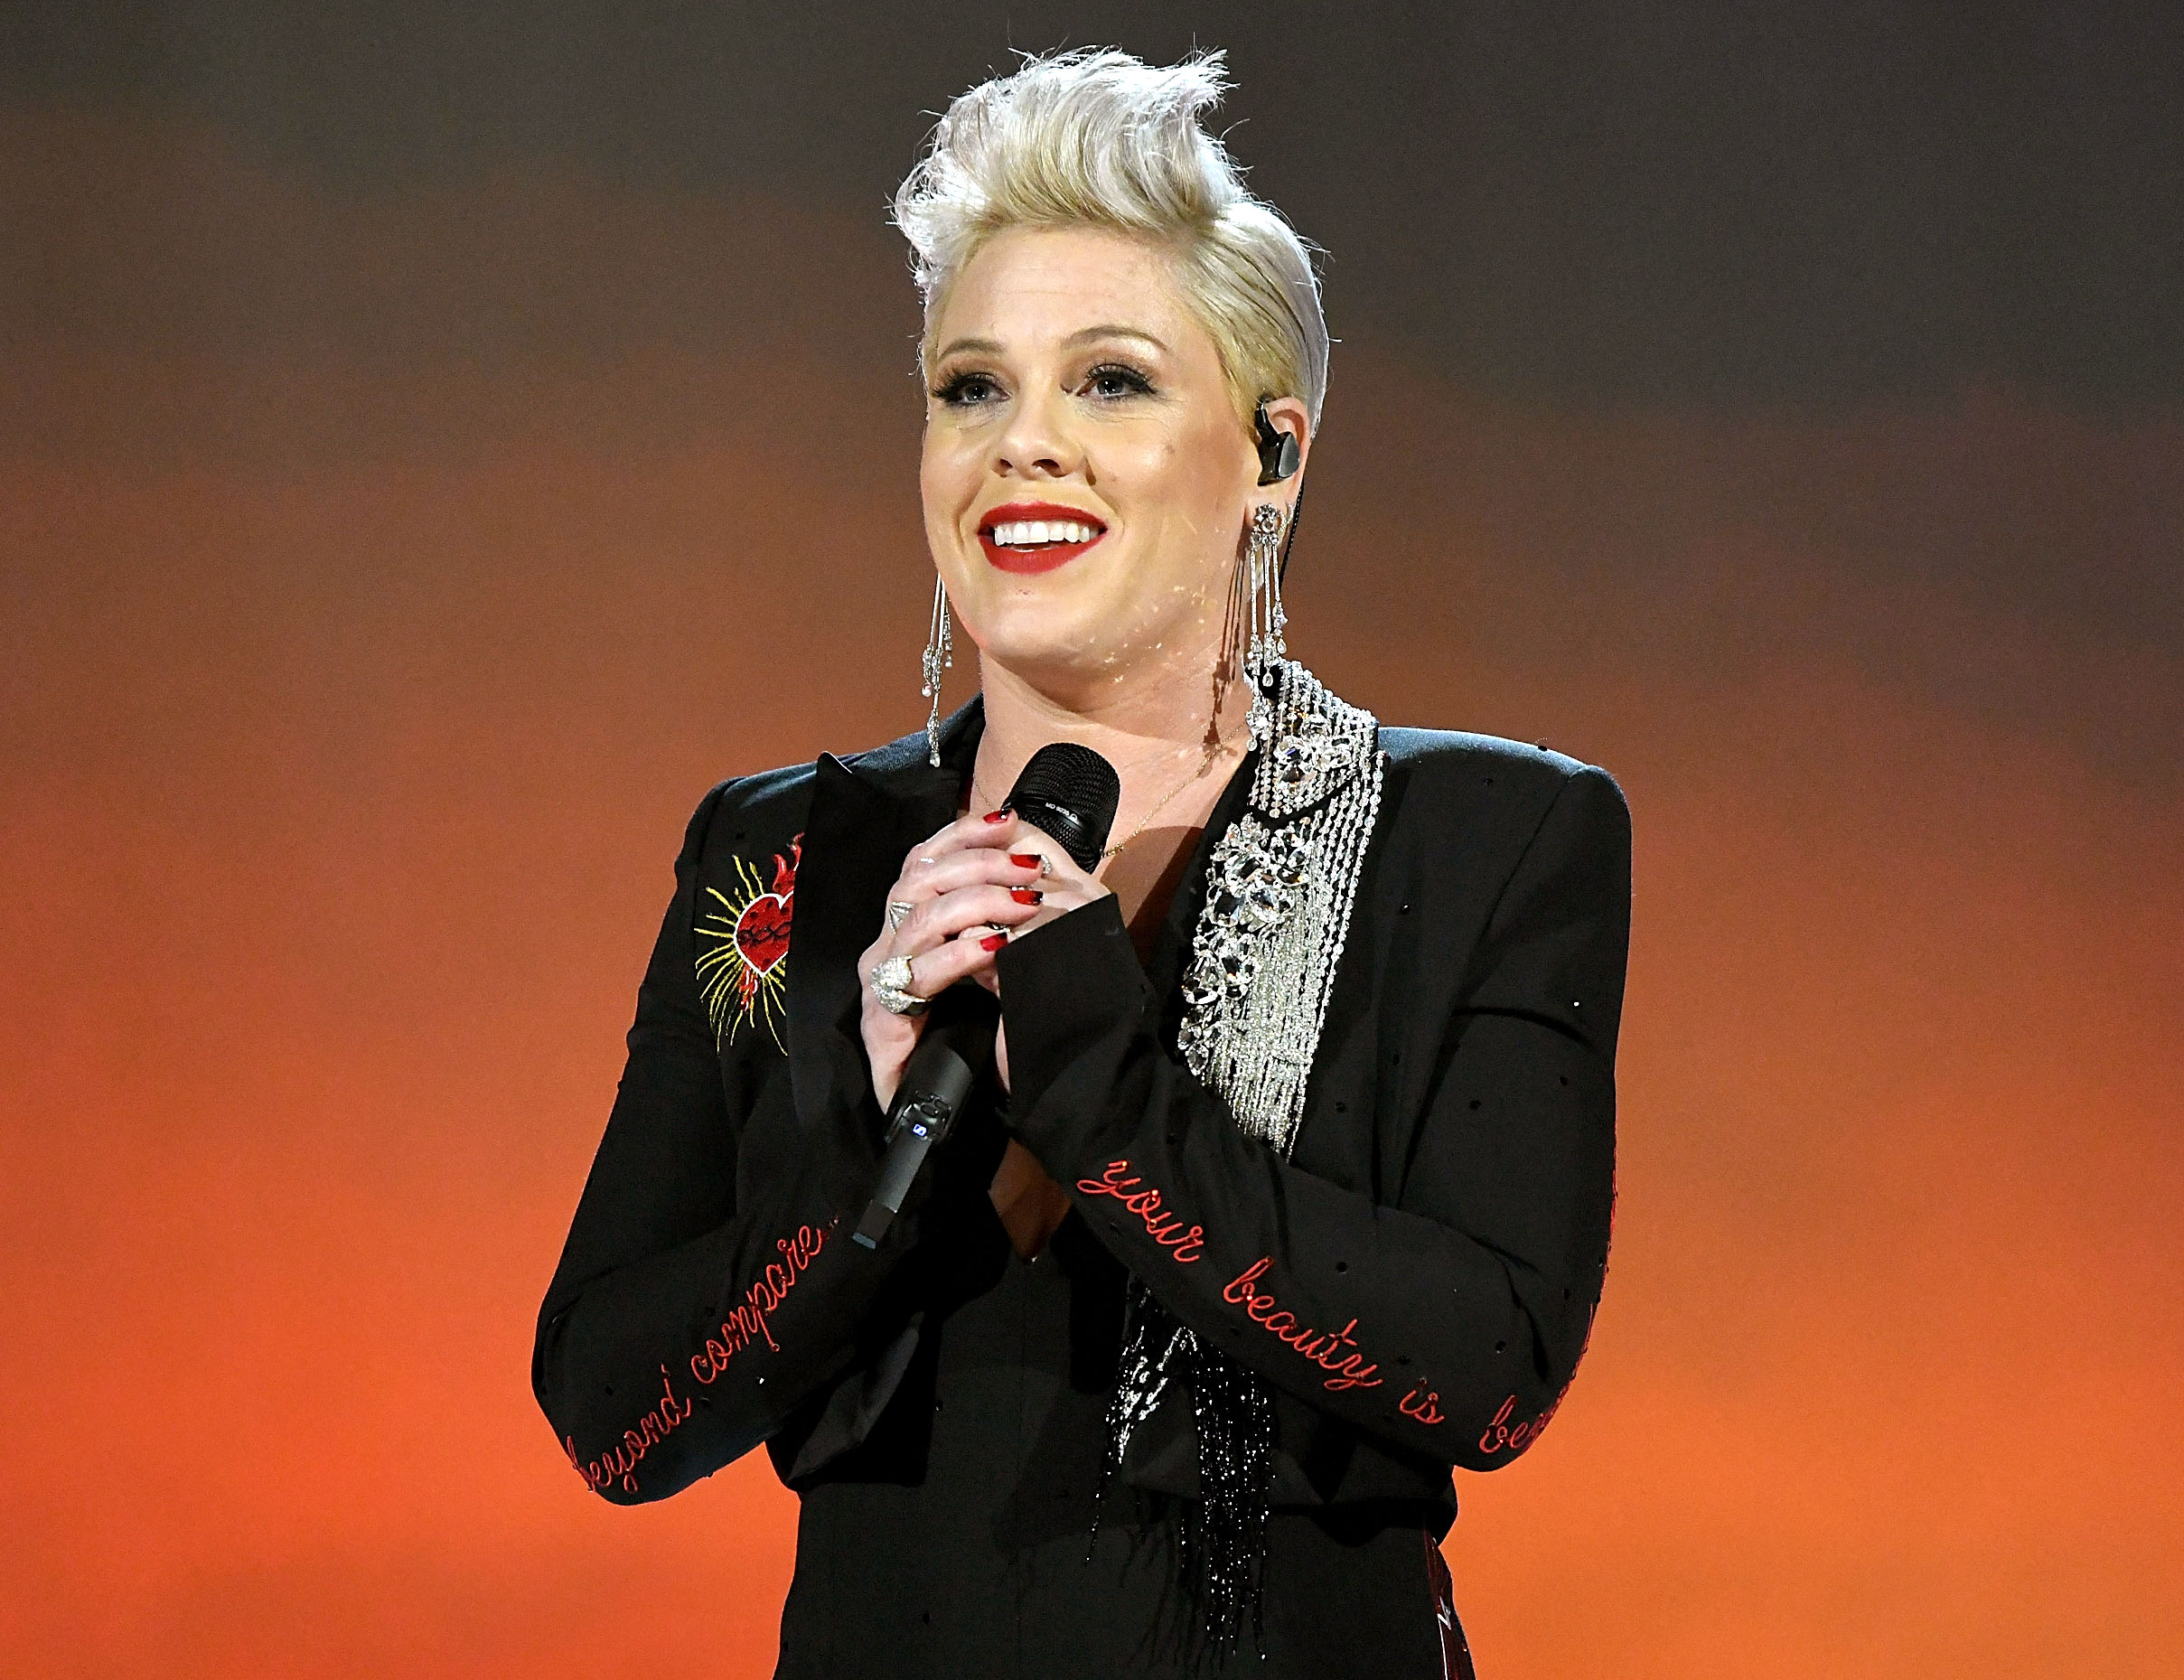 Pink Shares Sweet Pic With Her Kids As She Starts New Tour